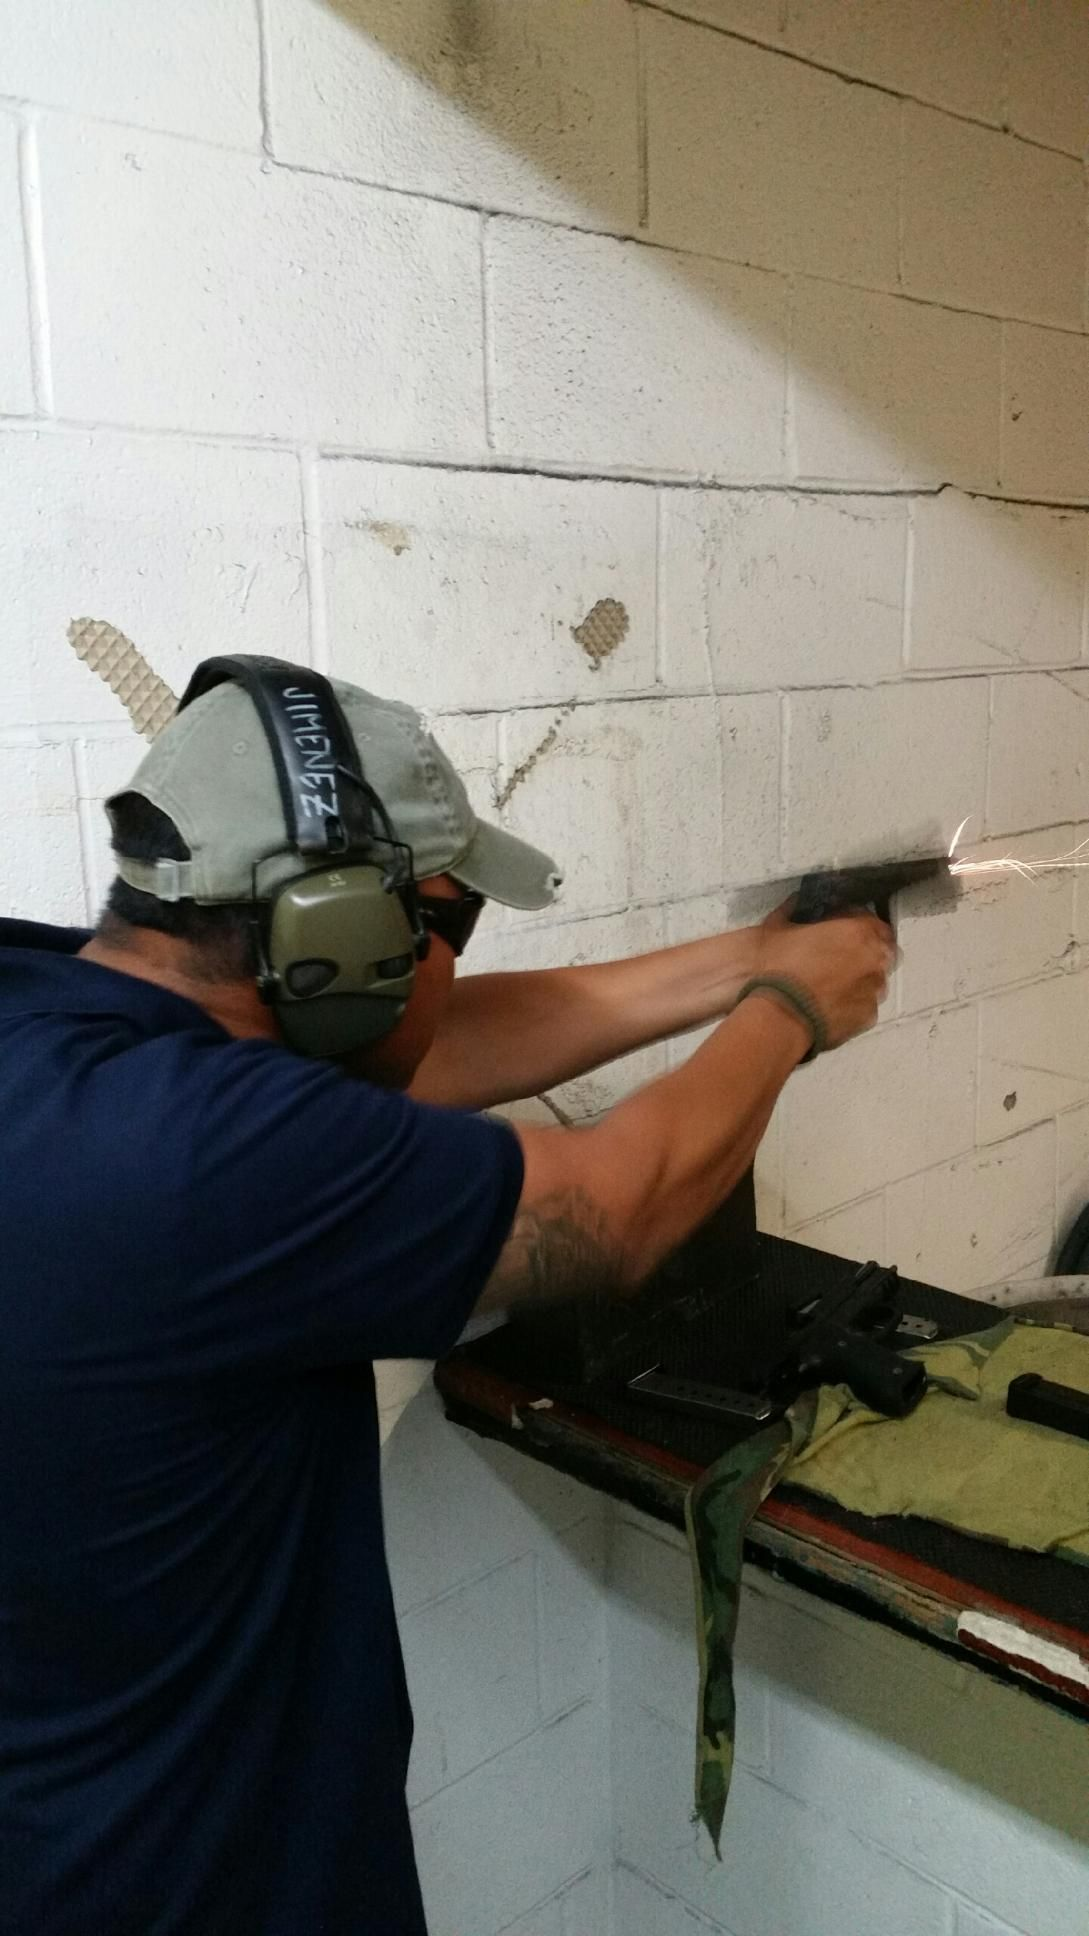 BAD ANDY good string of fire. Shiloh Shooting Range.